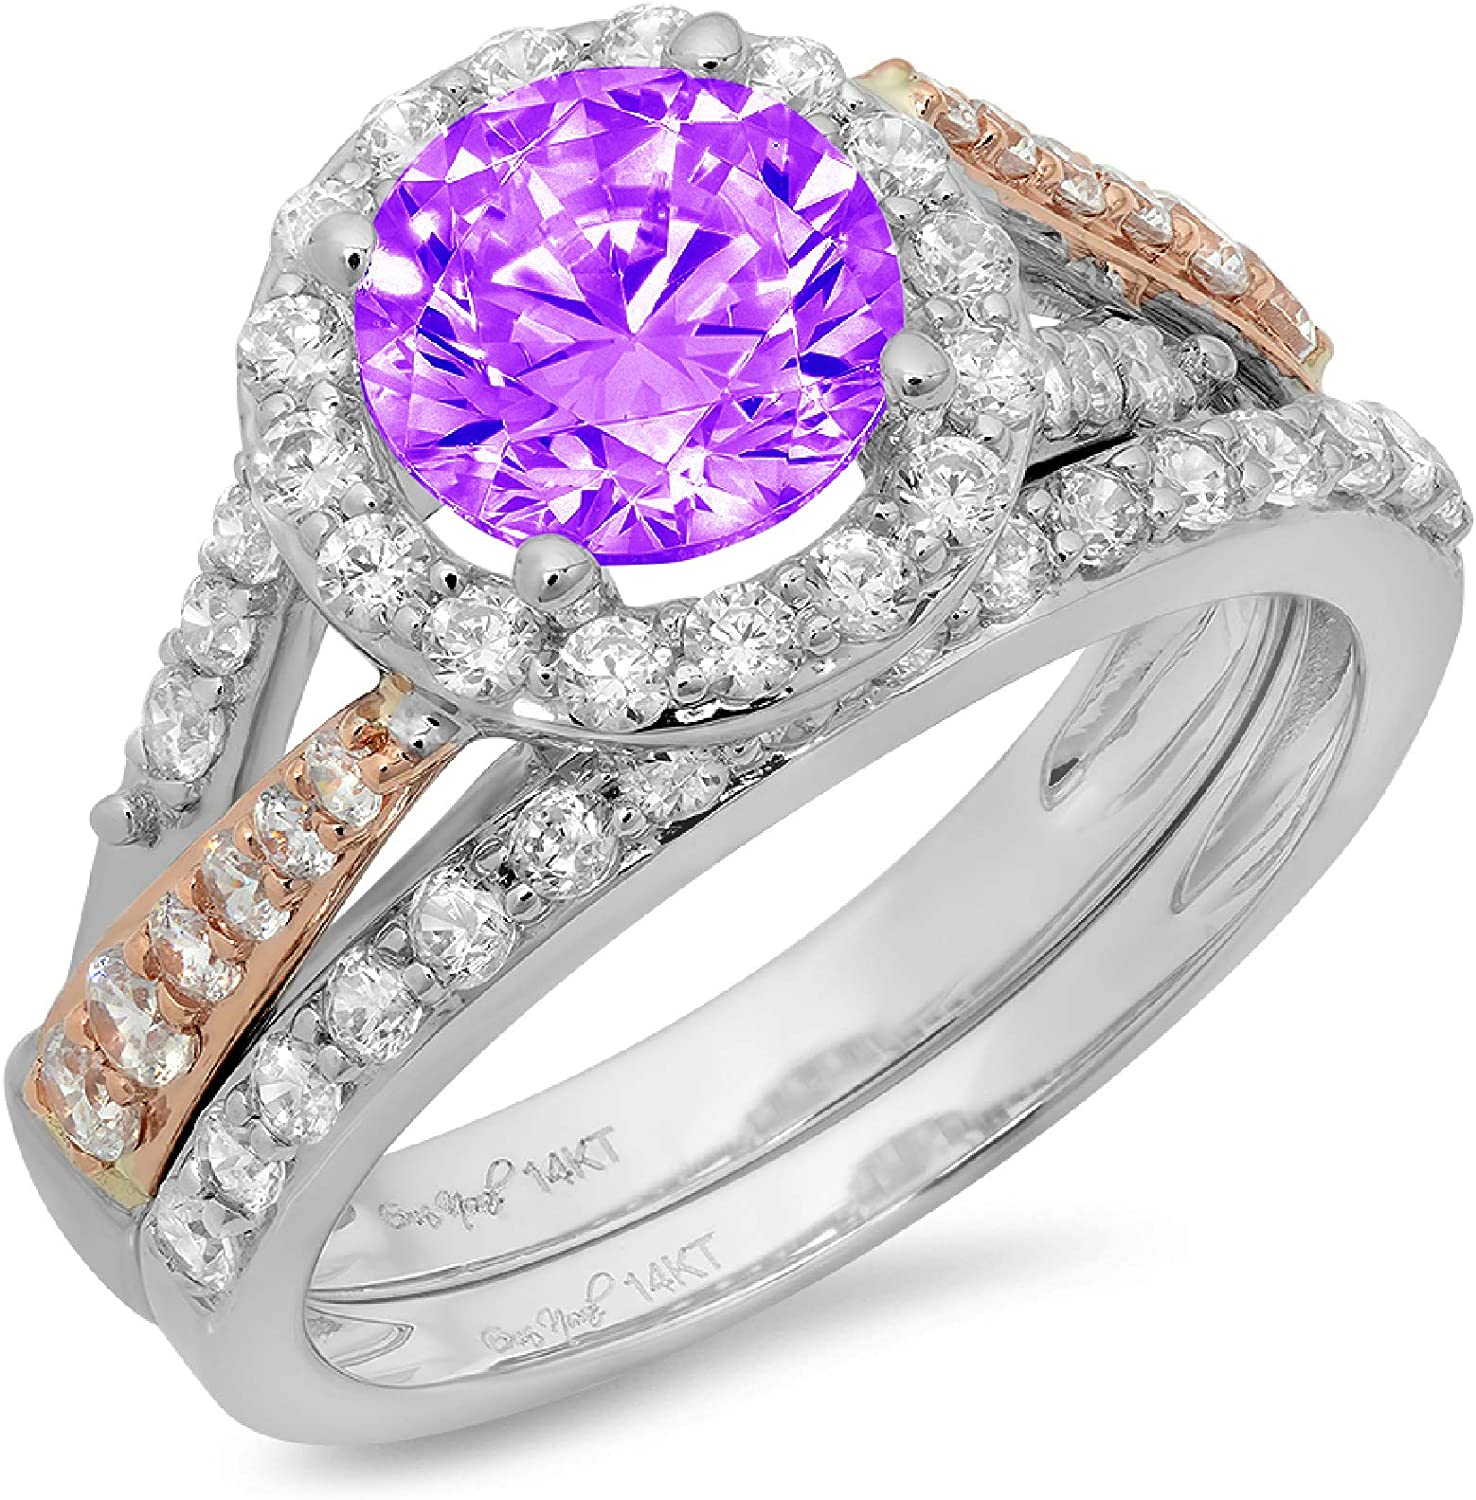 1.87ct Round Cut Pave Halo Split Shank Solitaire with Accent Natural Purple Amethyst Designer Statement Classic Ring Band Set Real 14k 2 tone Gold